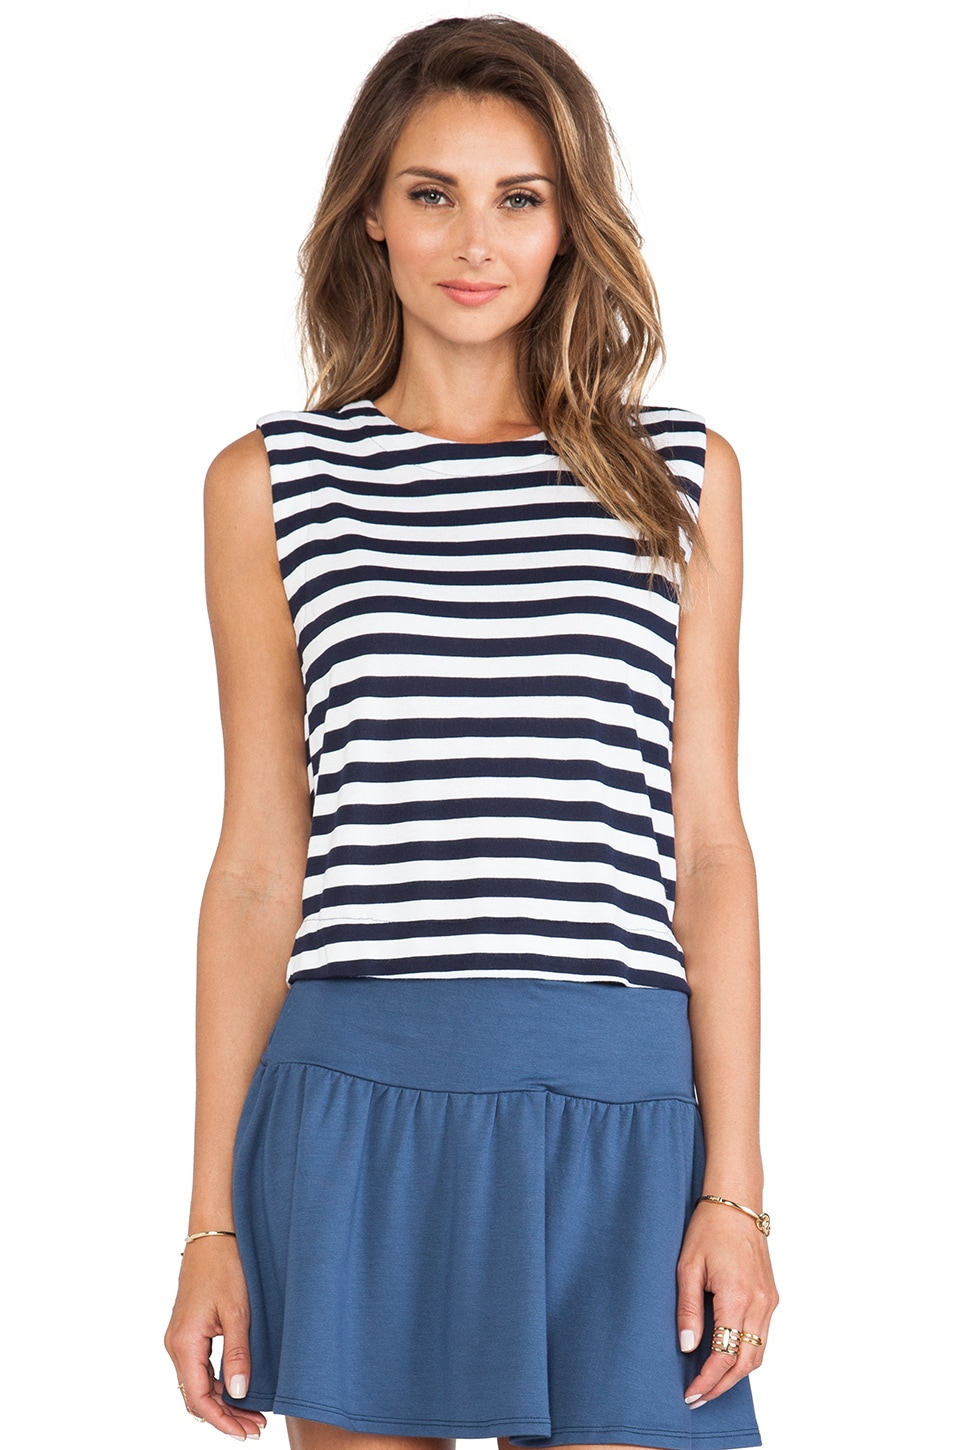 Soft Joie Aarika Crop Tank in Dark Denim & Porcelain